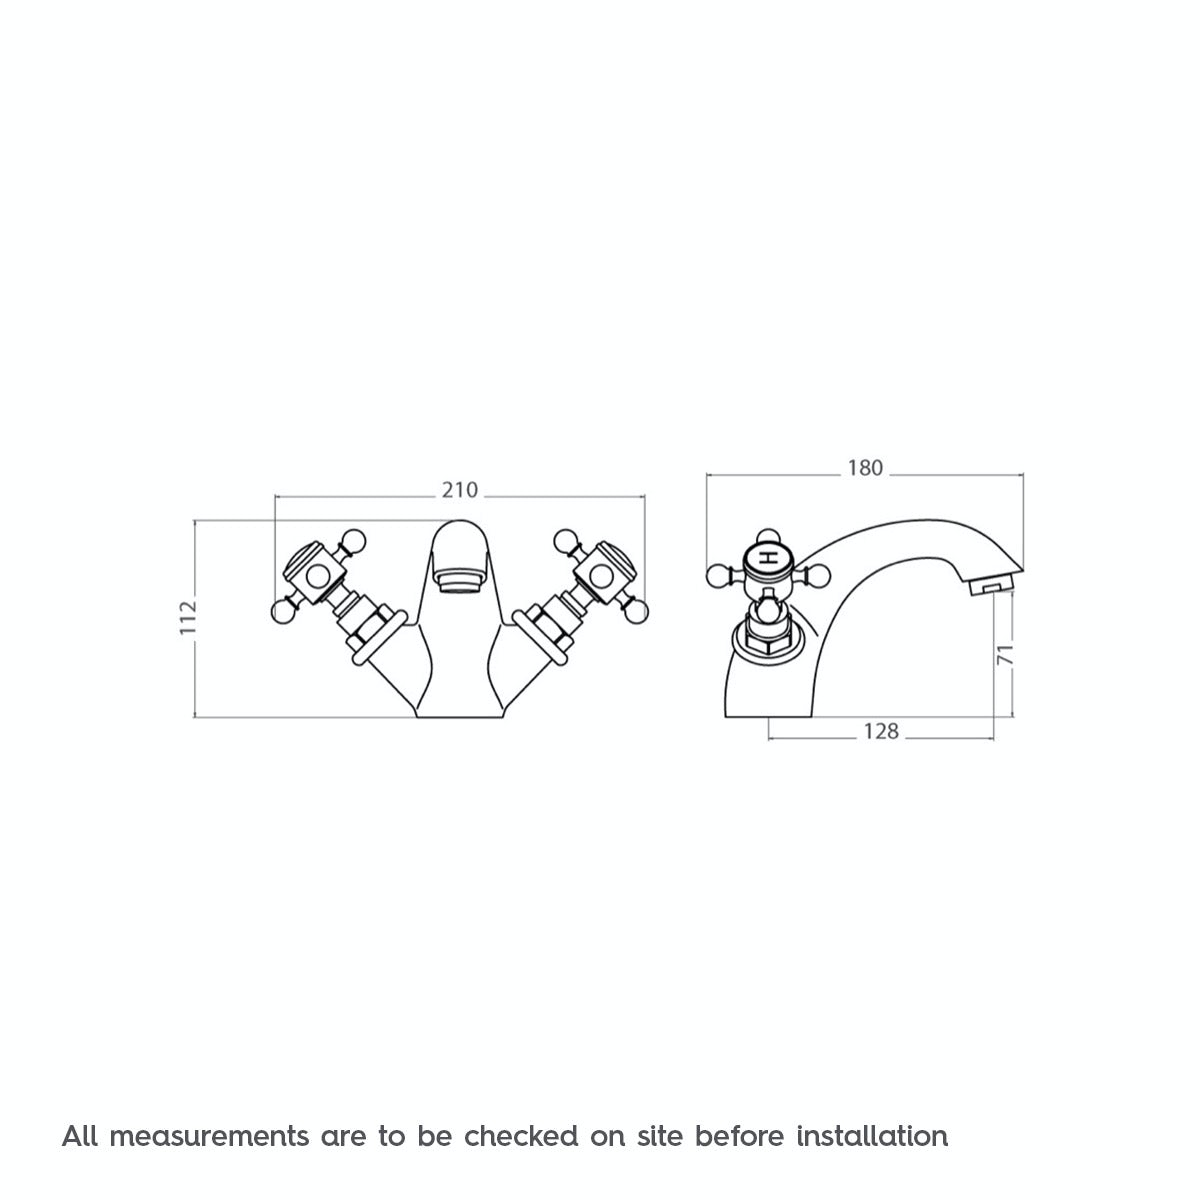 Dimensions for The Bath Co. Coniston basin mixer tap